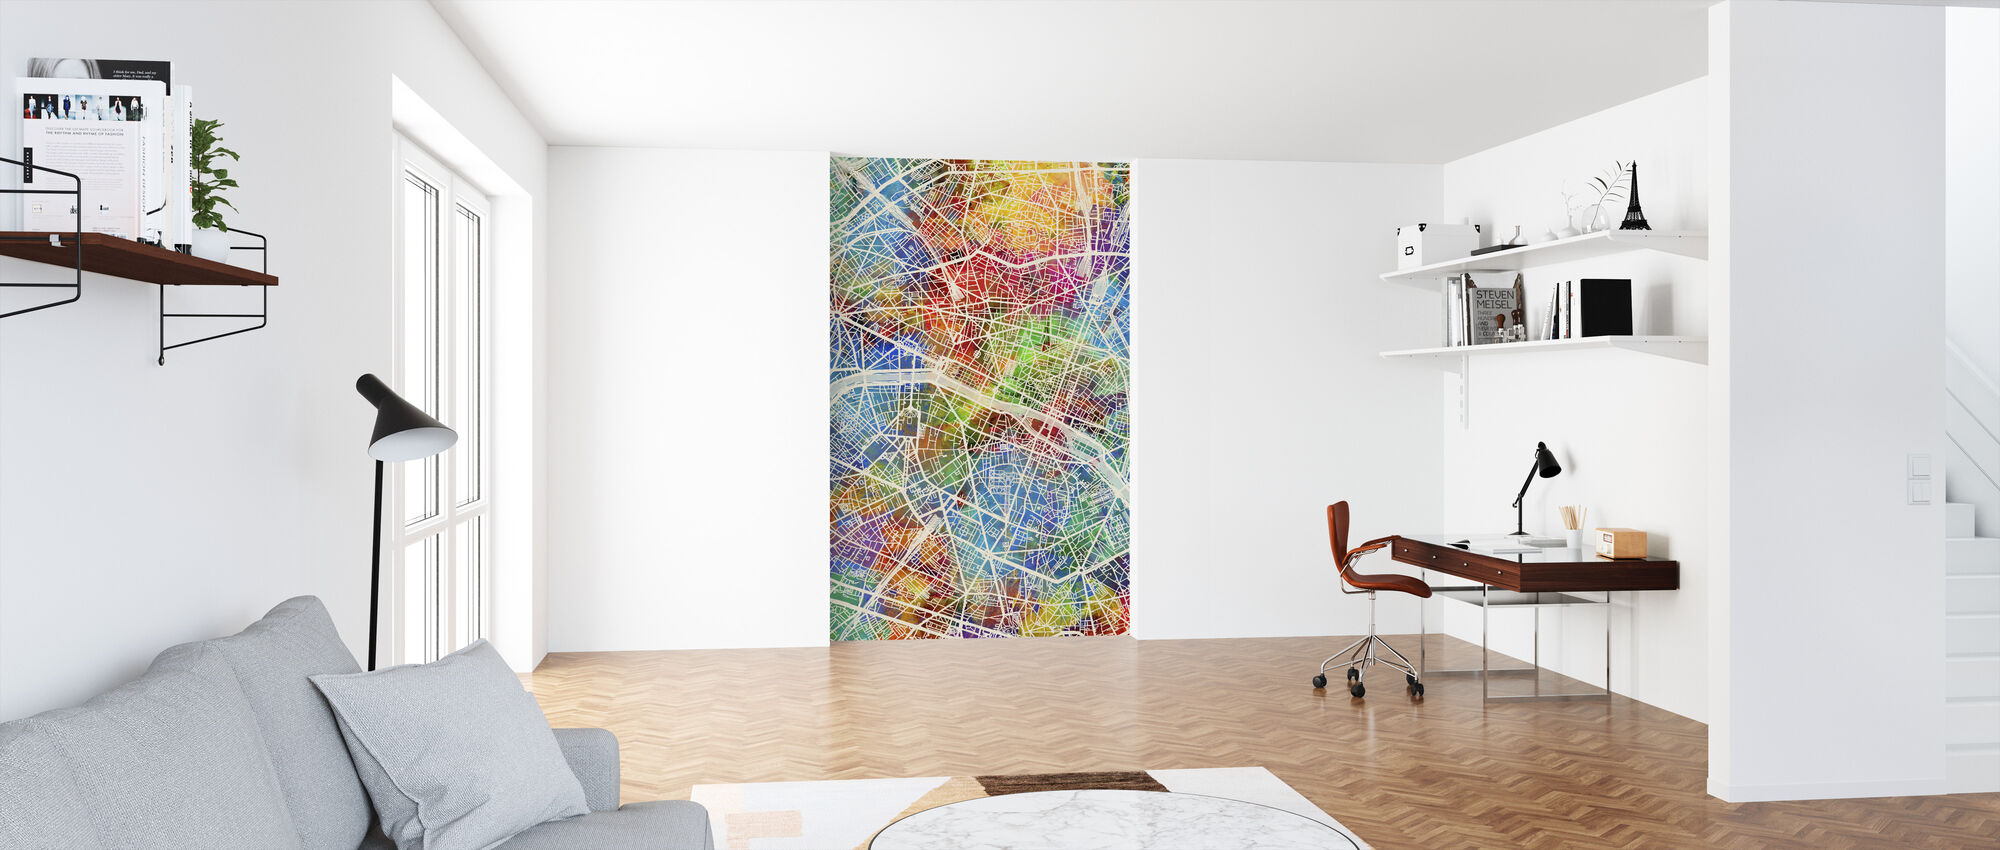 Paris France City Map - Wallpaper - Office